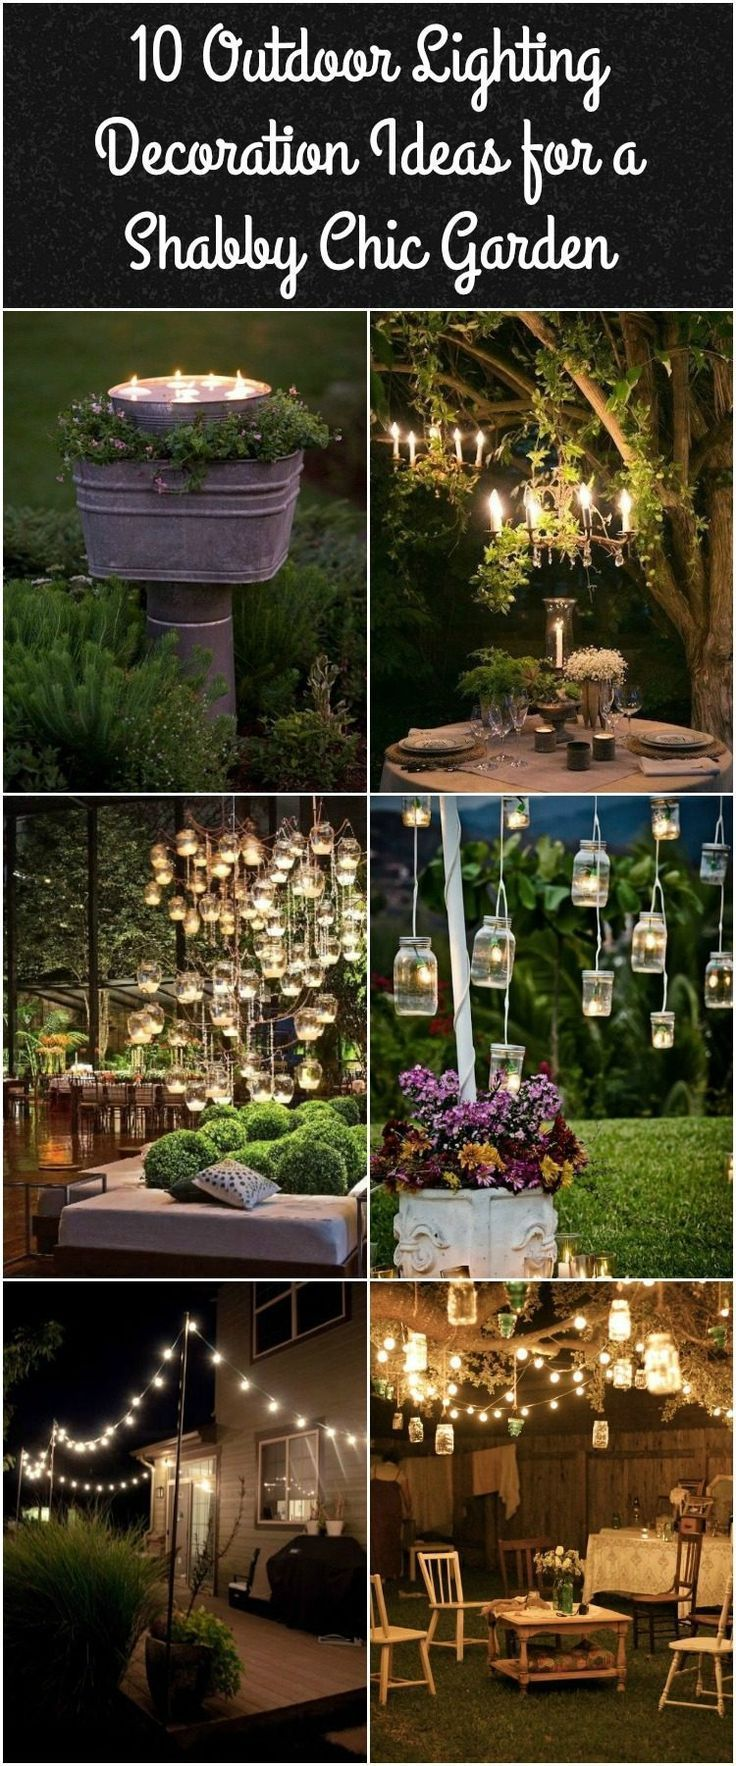 Lovely 10 Outdoor Lighting Decoration Ideas For A Shabby Chic Garden. #6 Is Lovely  Outdoor